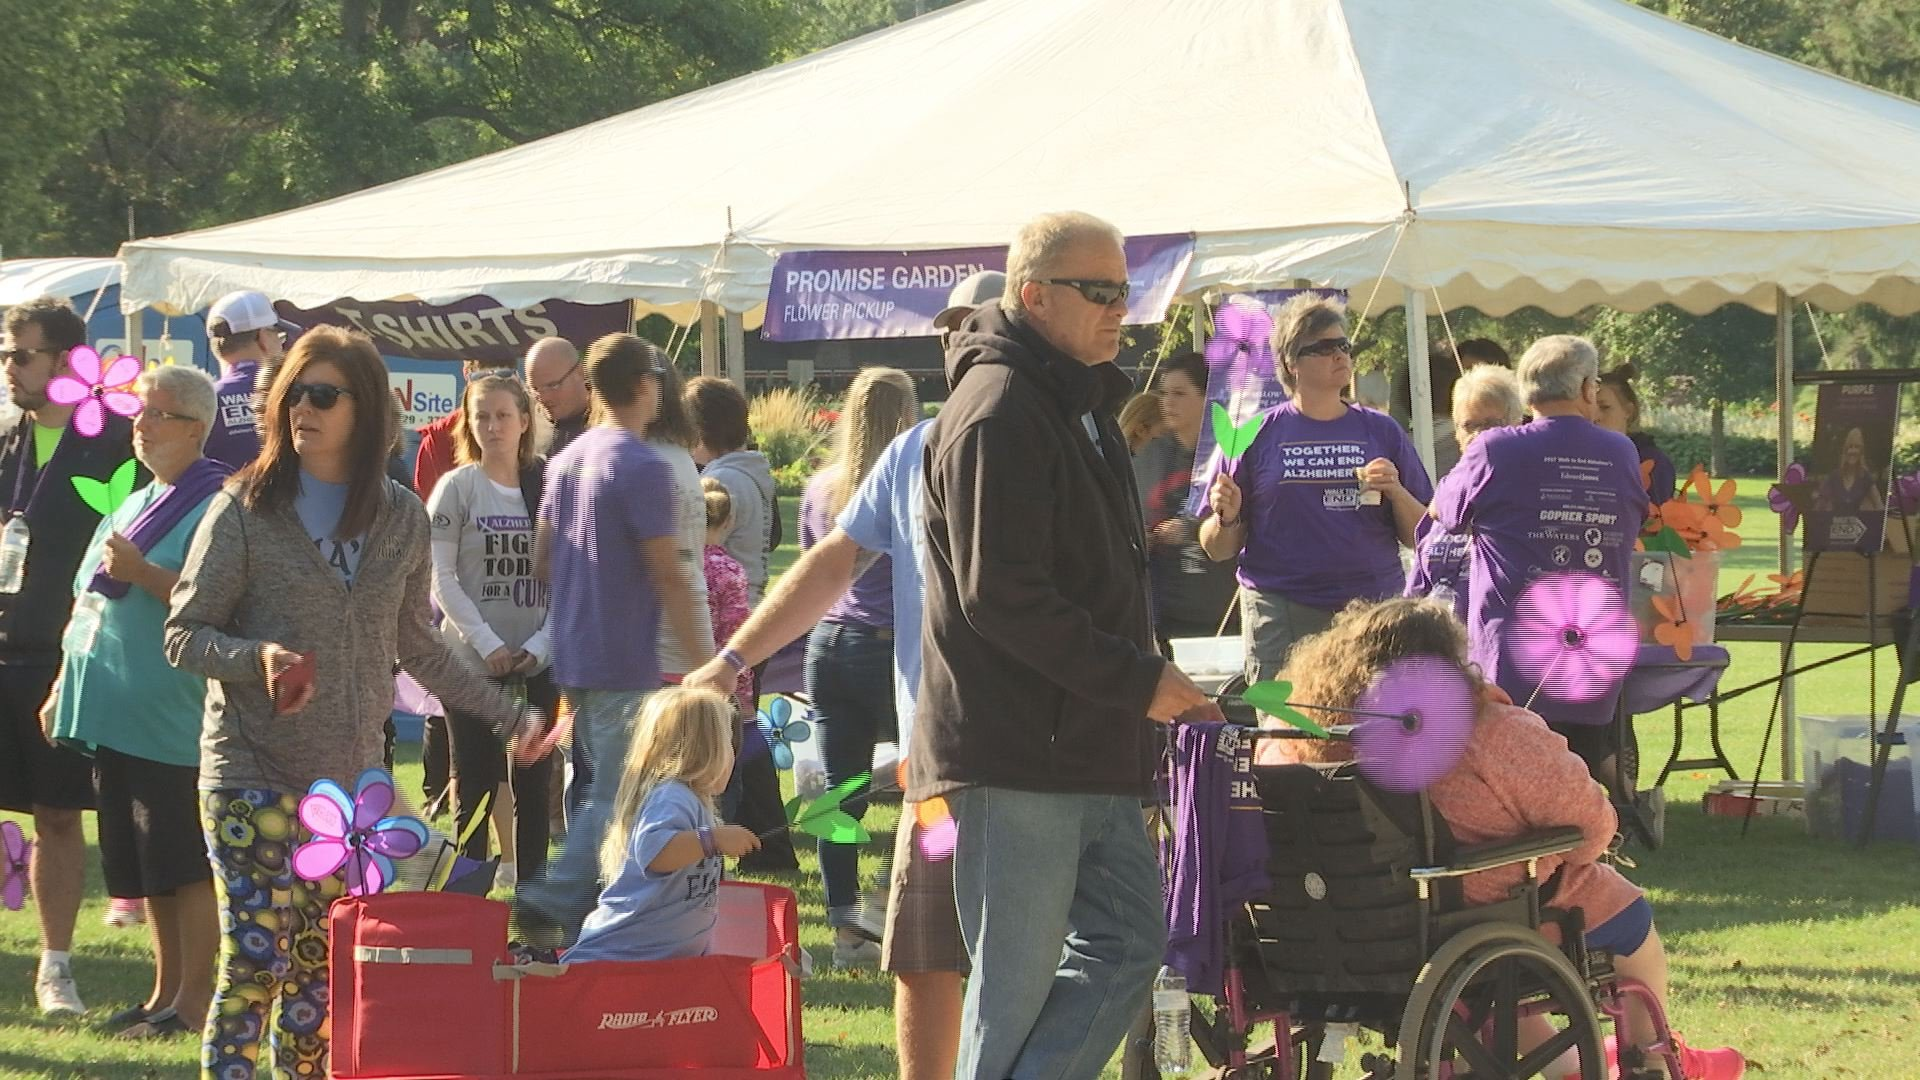 Sibley Park Hosts Annual Walk To End Alzheimer's